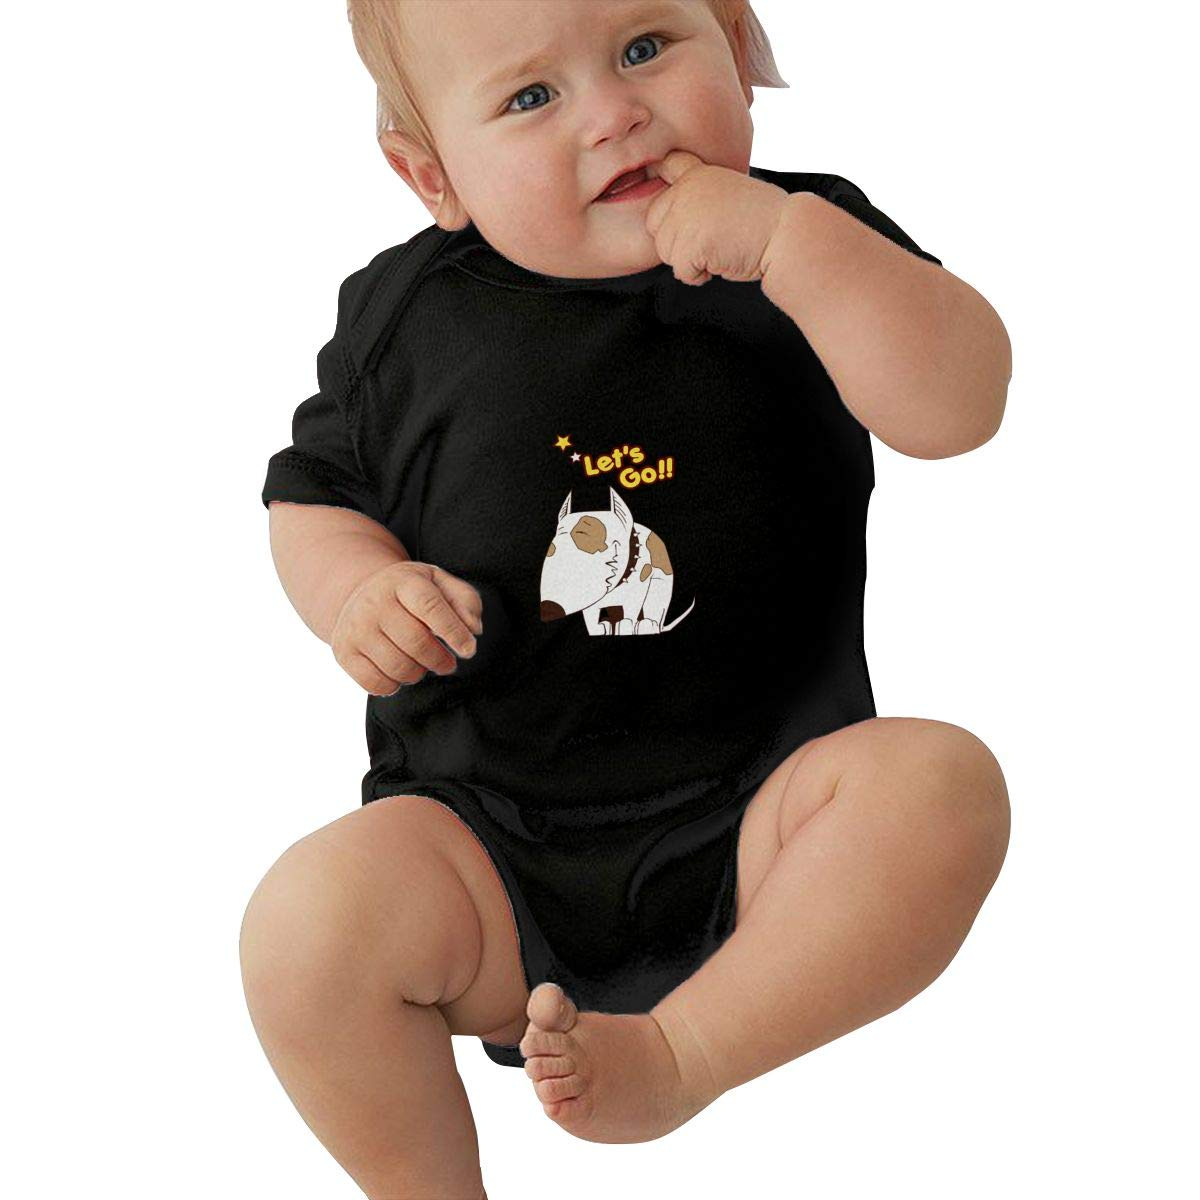 HuoFengDing Lively Dog Cotton Jersey Bodysuit Romper for Baby Boy